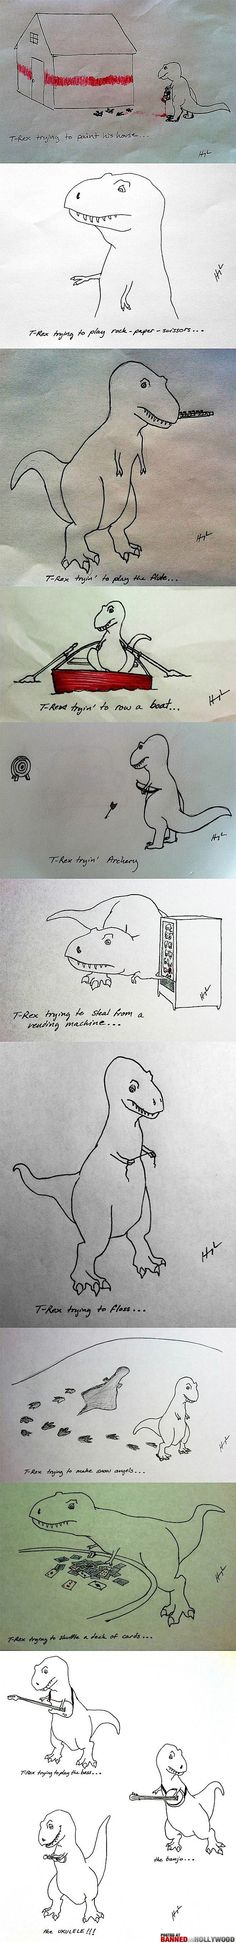 T-Rex Problems, definitely made my day!!!